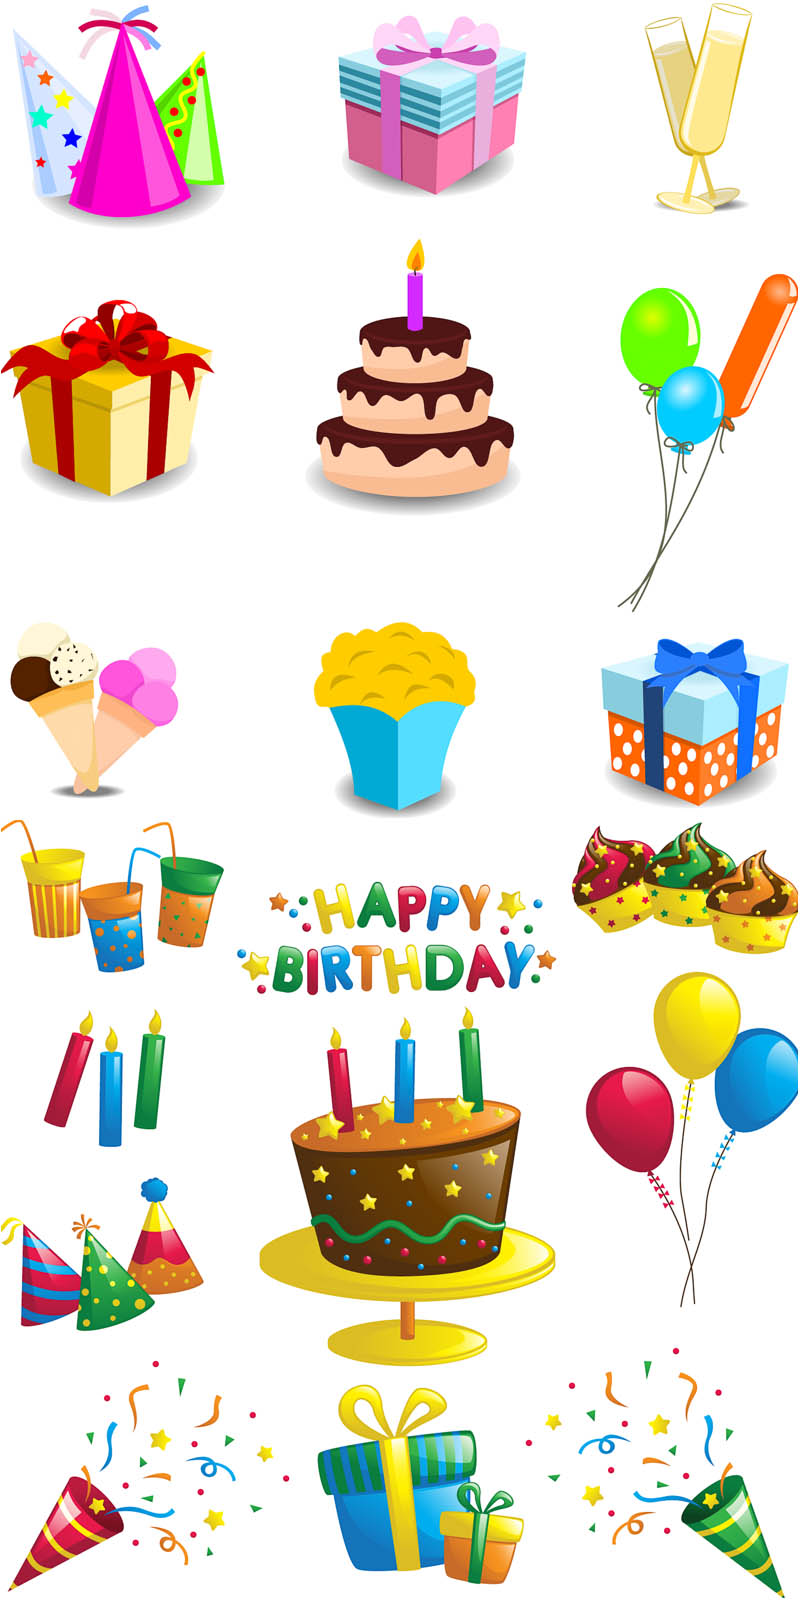 Happy Birthday Cartoon Decorations